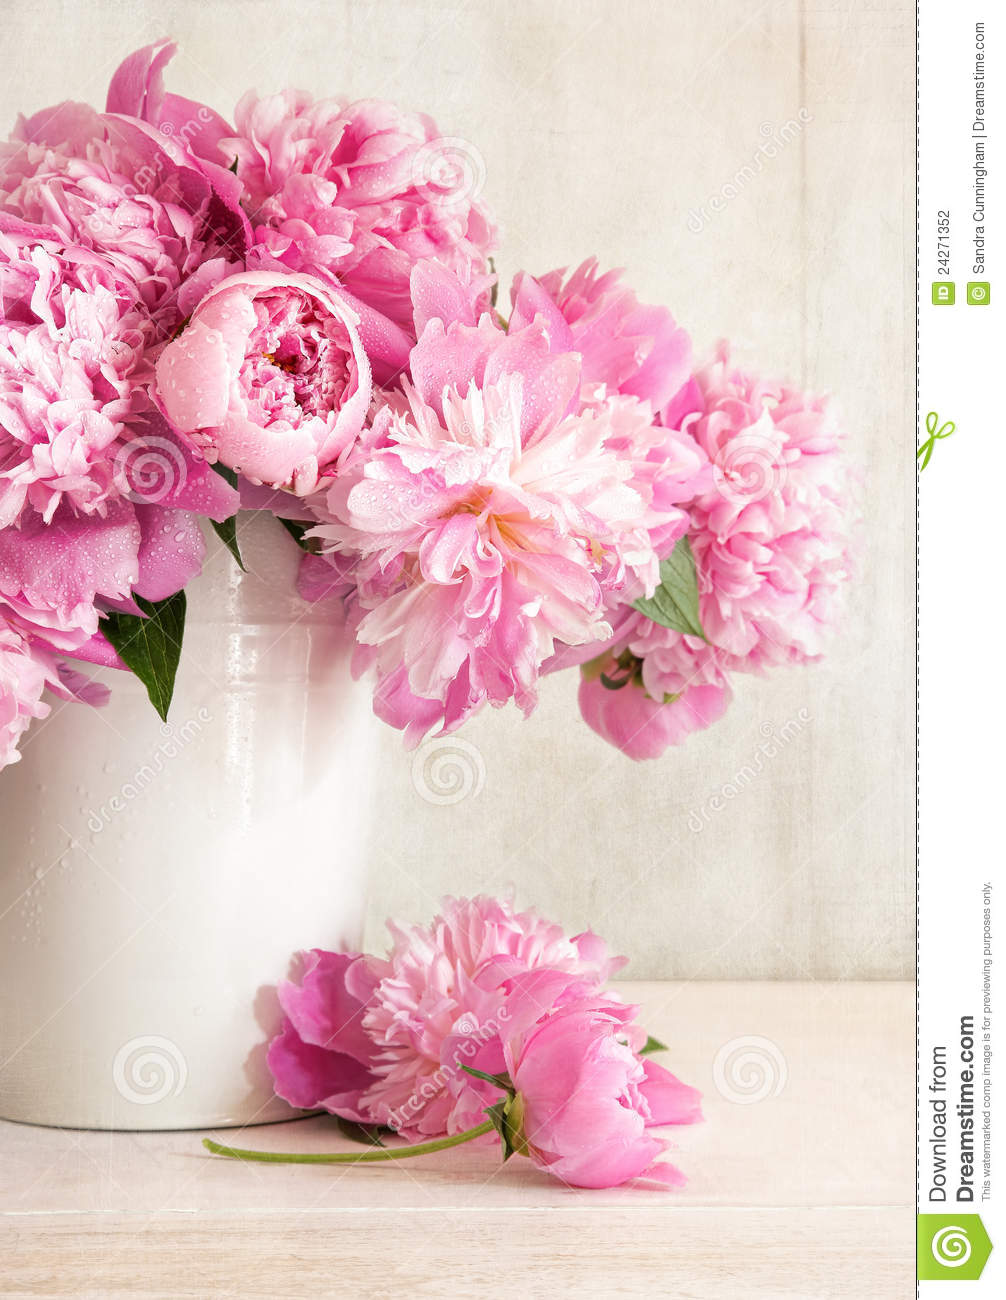 pink peonies in vase stock photography image 24271352. Black Bedroom Furniture Sets. Home Design Ideas